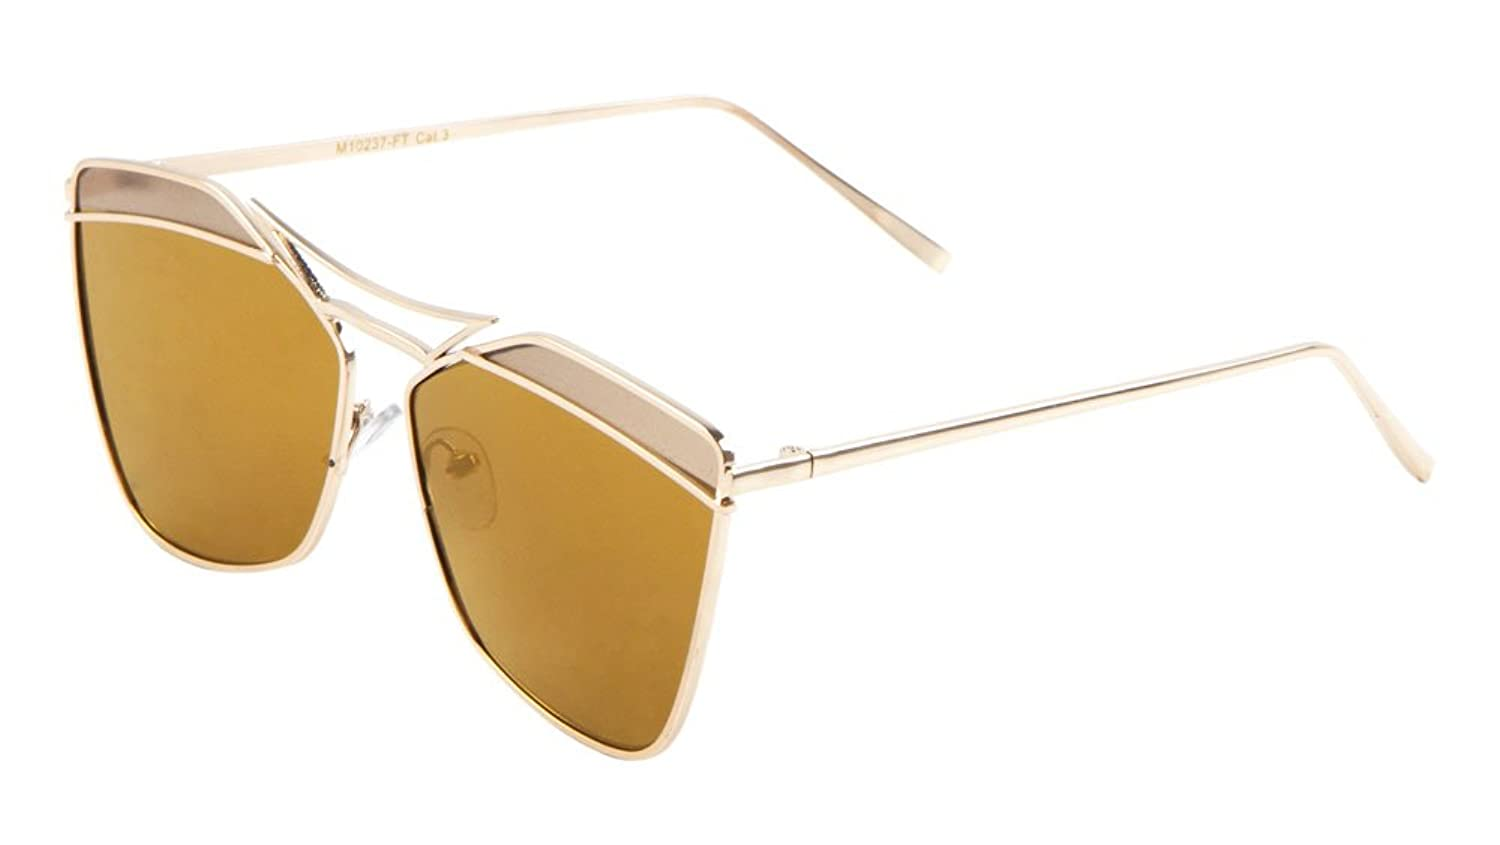 Sunglasses Luxe. Metal Fashion Cat Eye Sunglasses with Flat Lens. (BROWN)